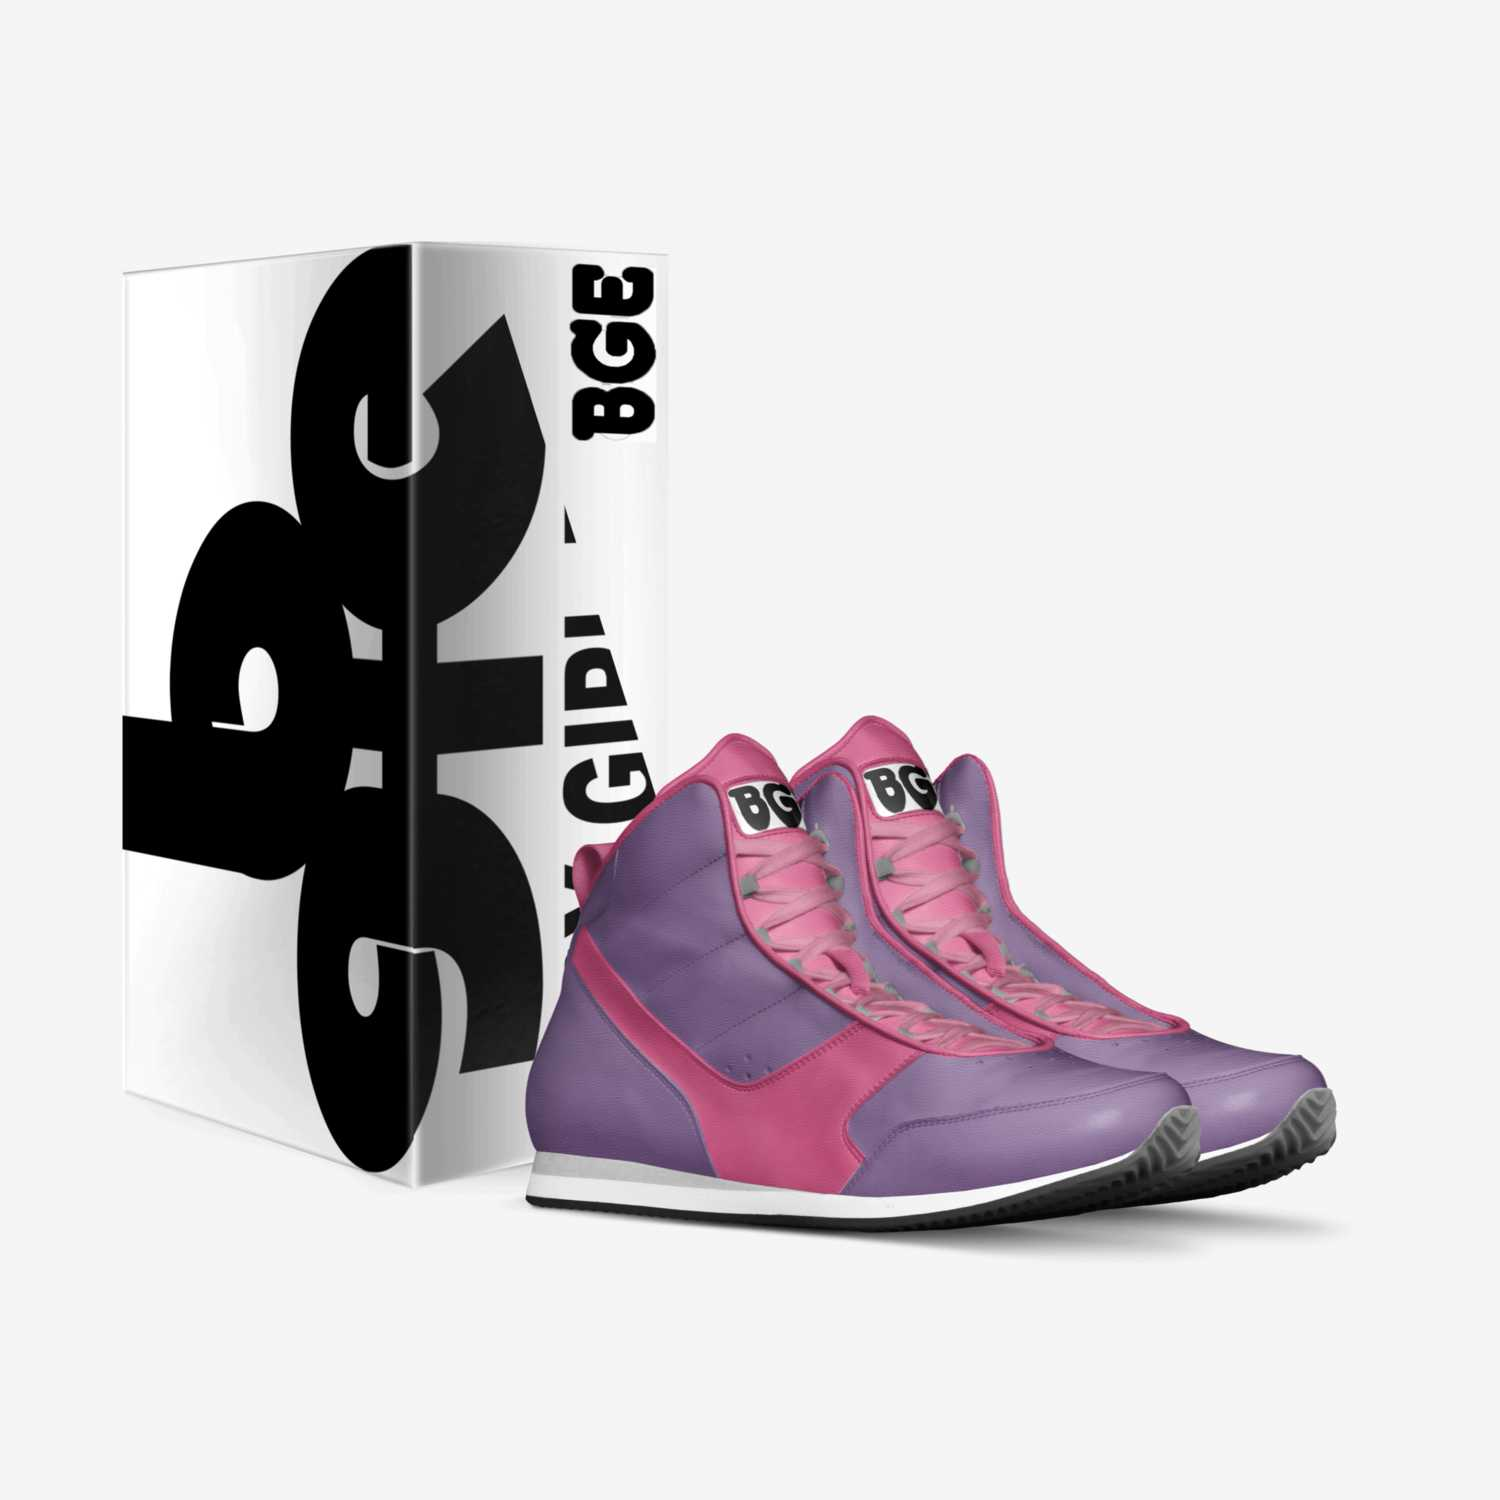 KB Purp Istinto custom made in Italy shoes by Baby-girl Elite | Box view